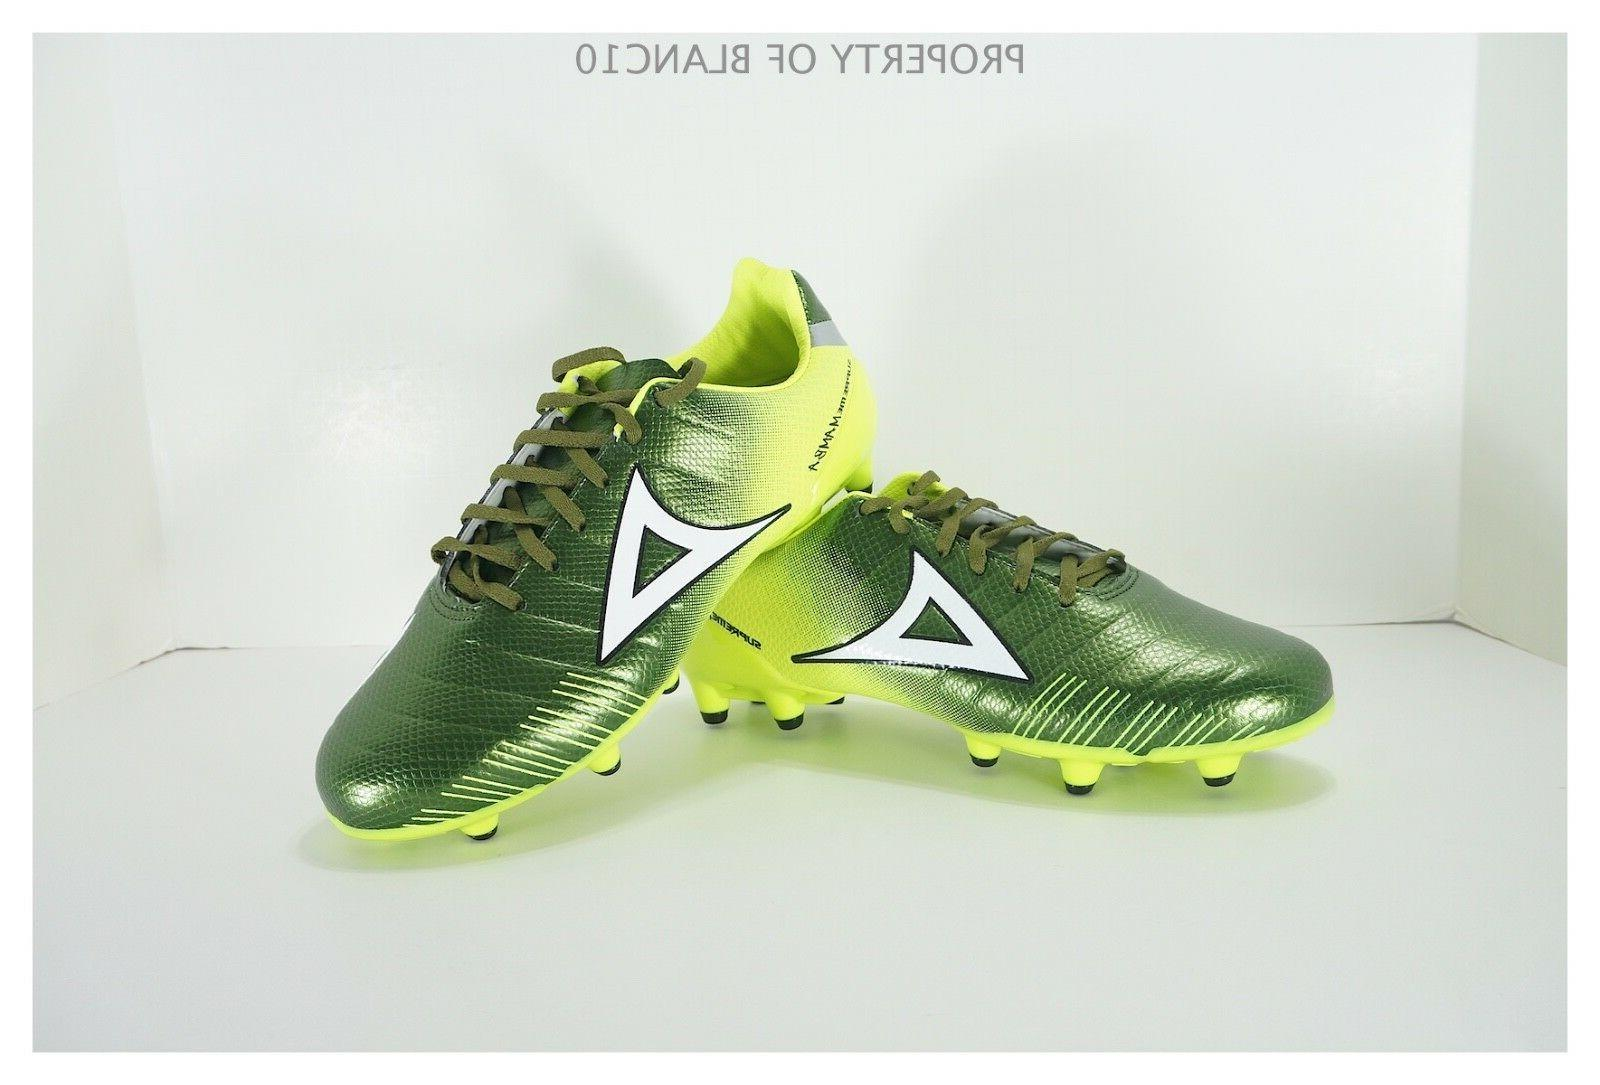 soccer cleats style 179 green yellow black